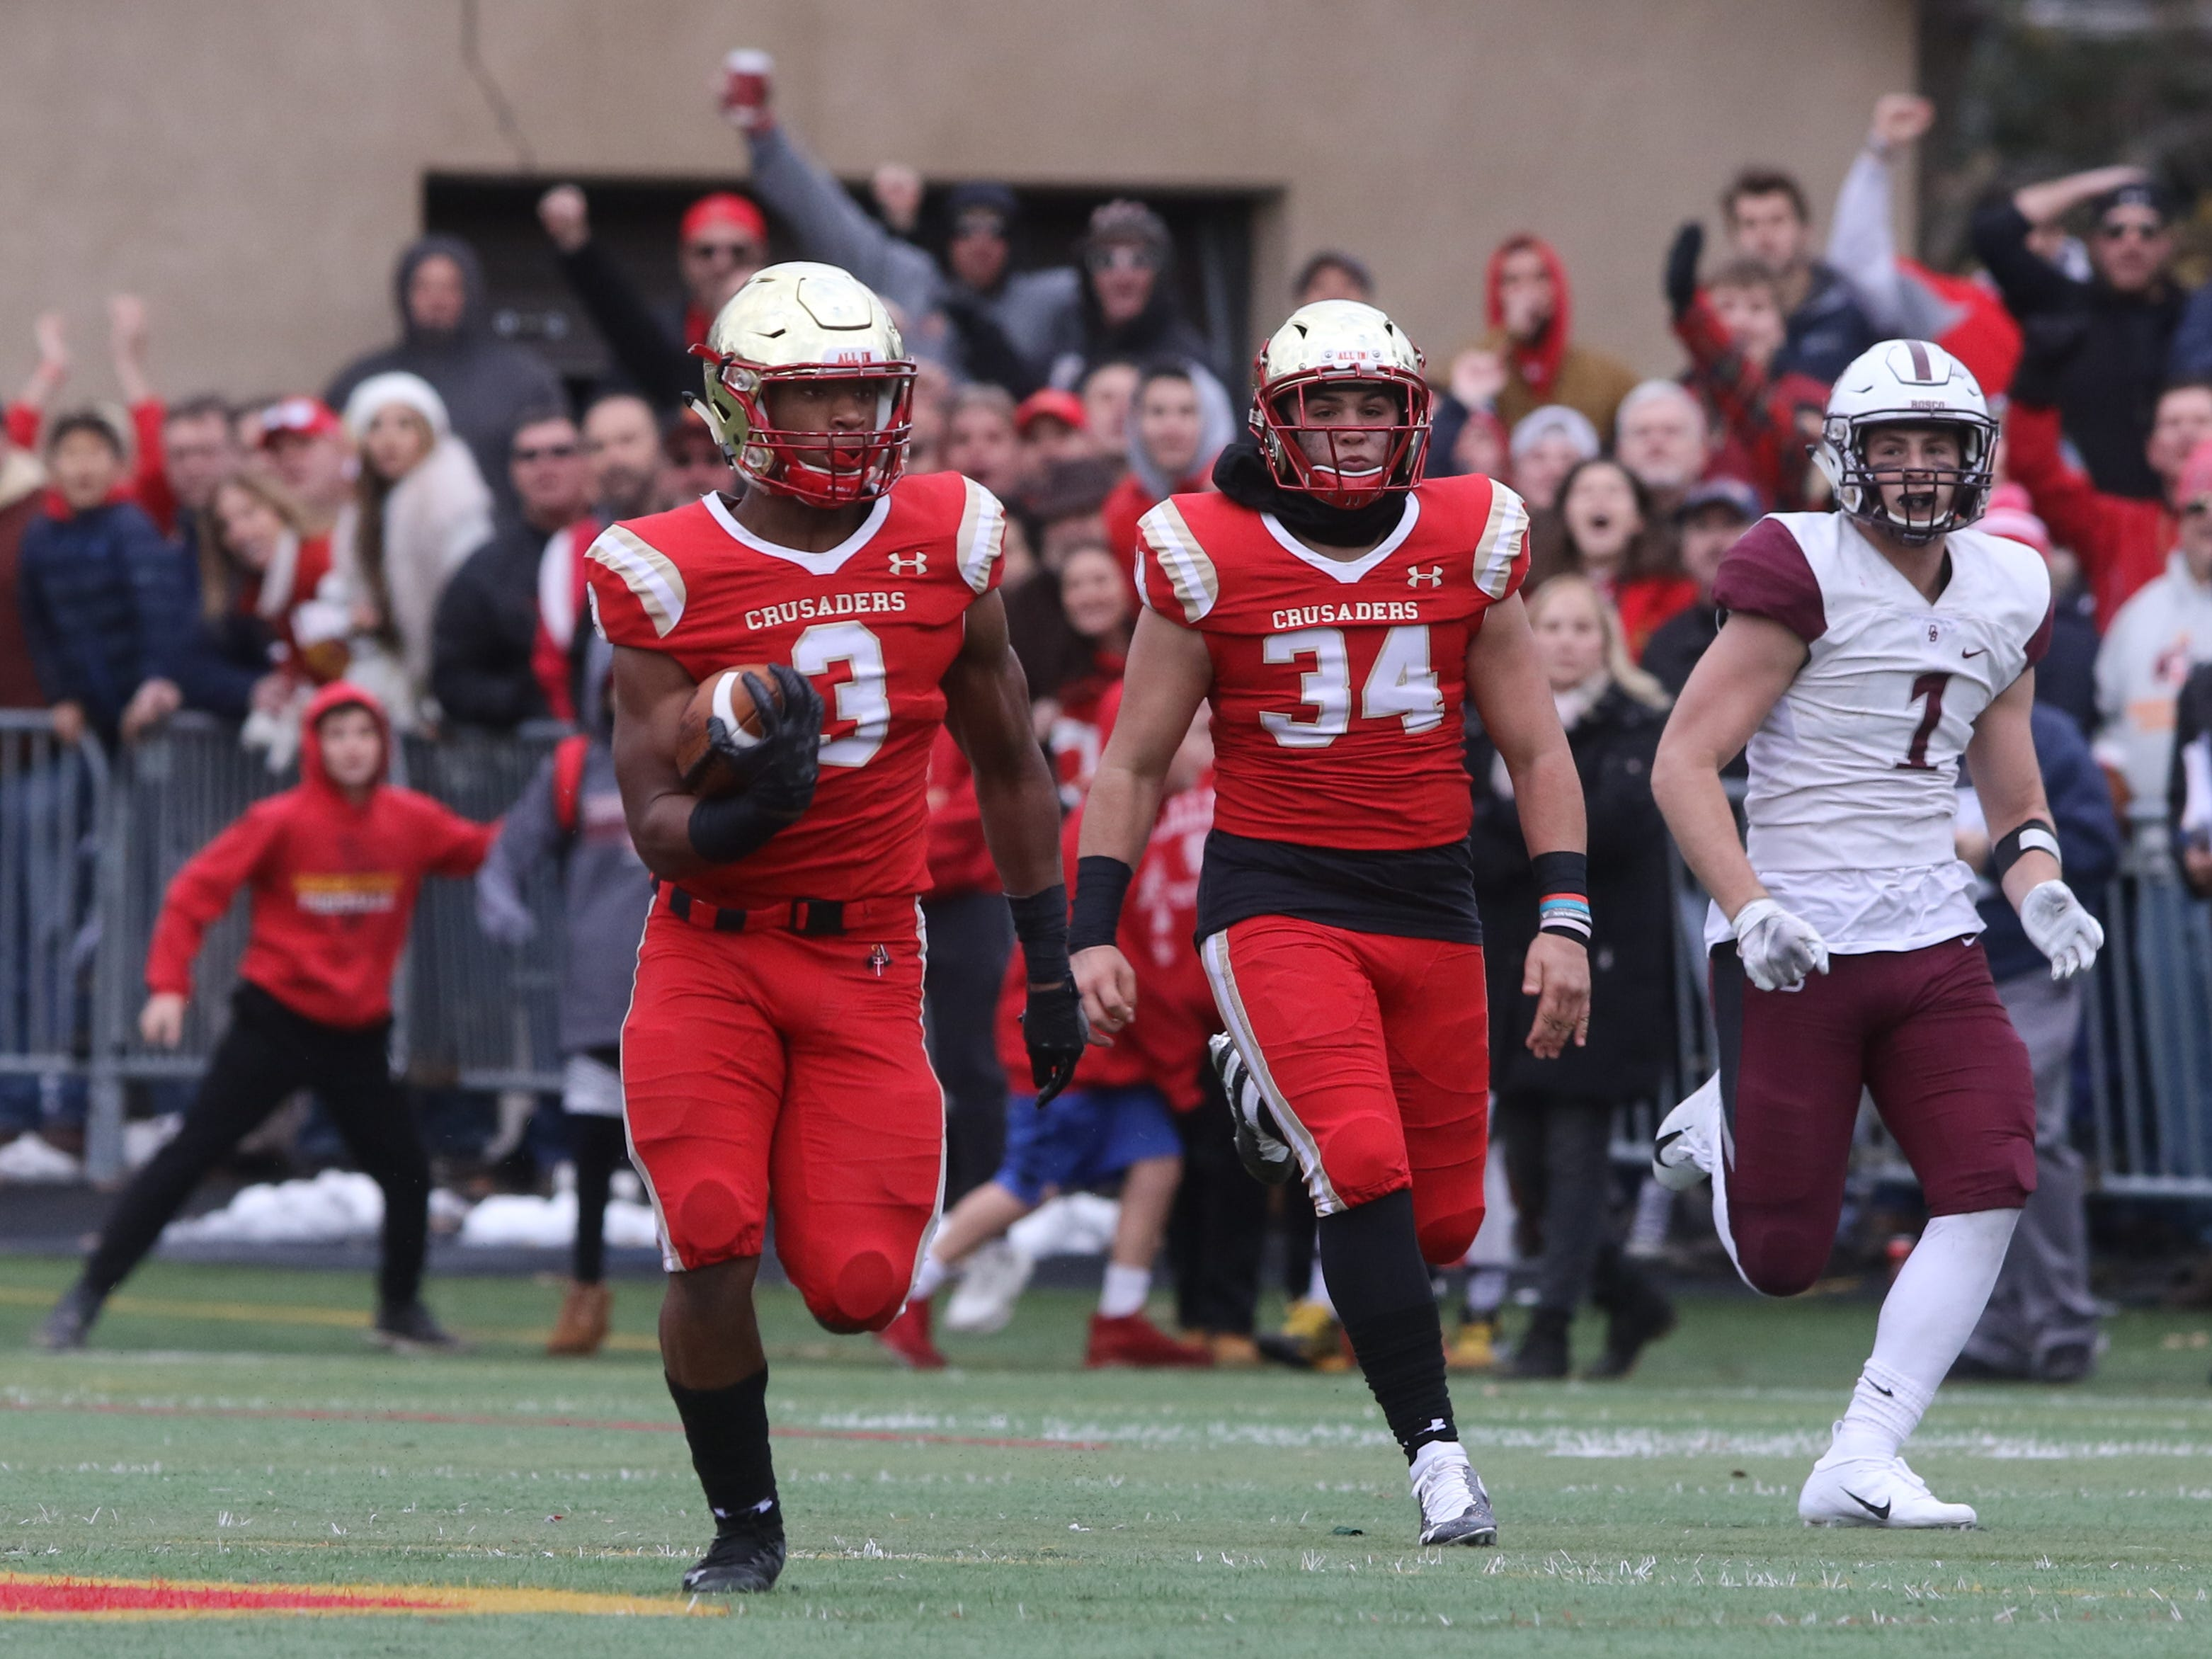 NJ football recruiting tracker: How the top recruits fared in third week of playoffs